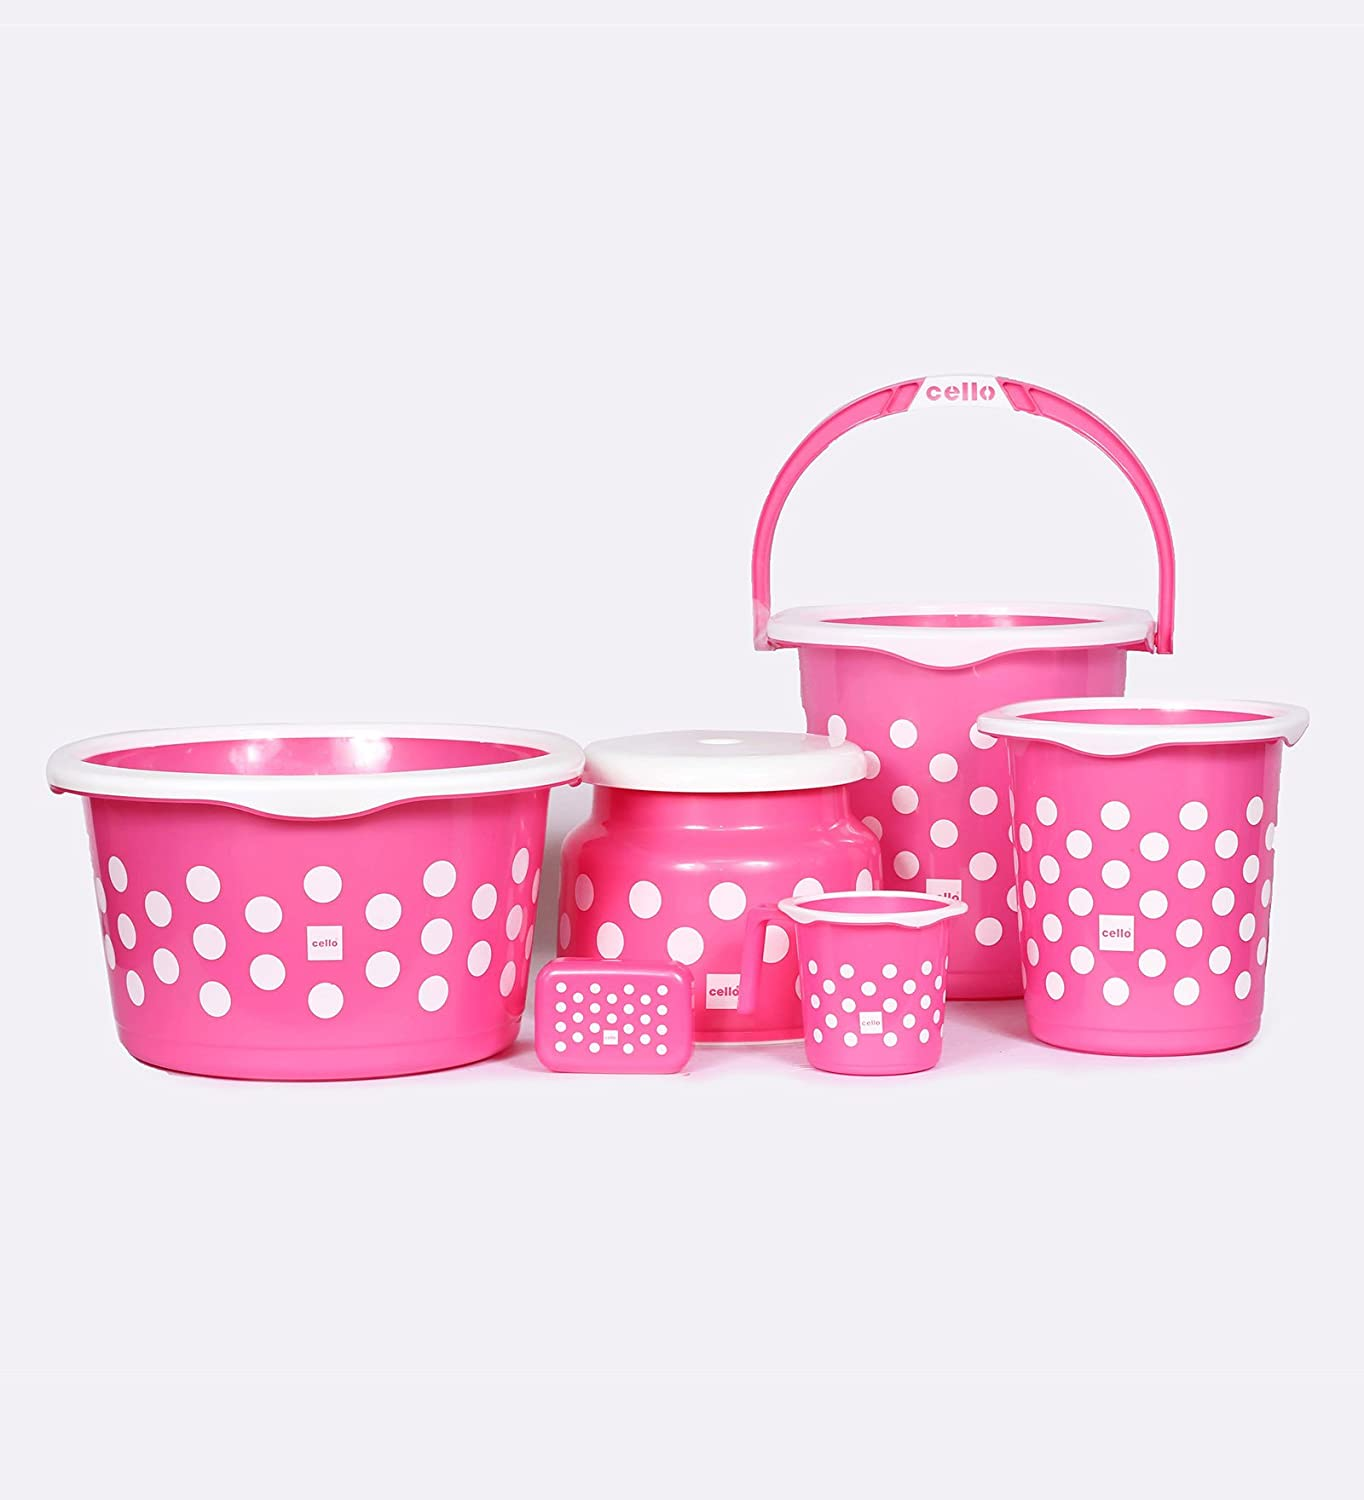 Cello Fusion 6 Piece Plastic Bath Set, Pink